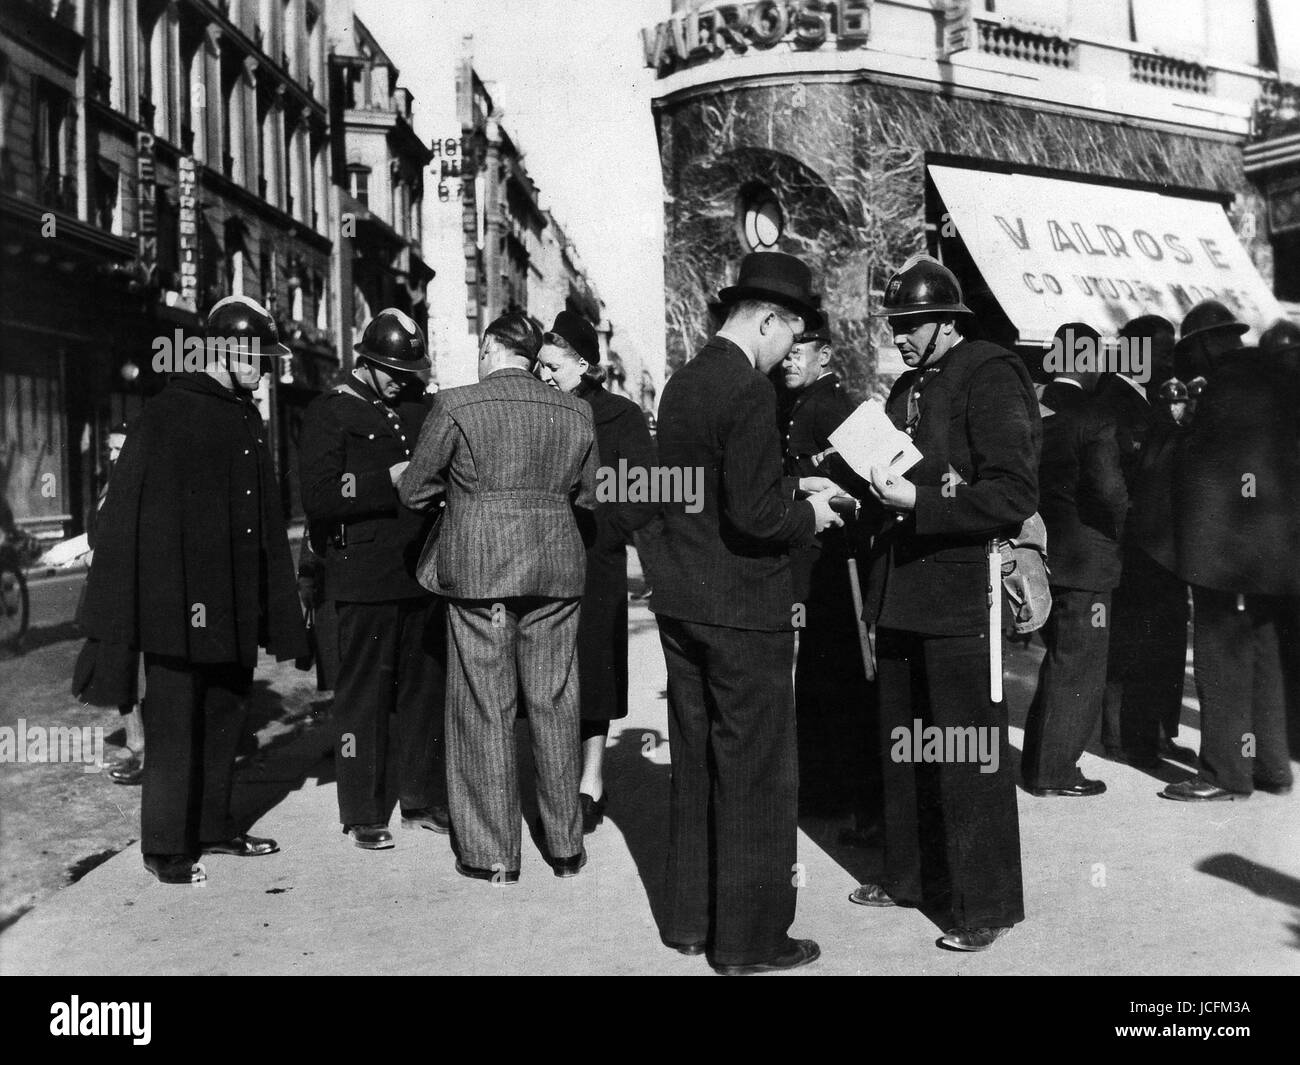 paris 1939 preparation with the war the police force checks papers